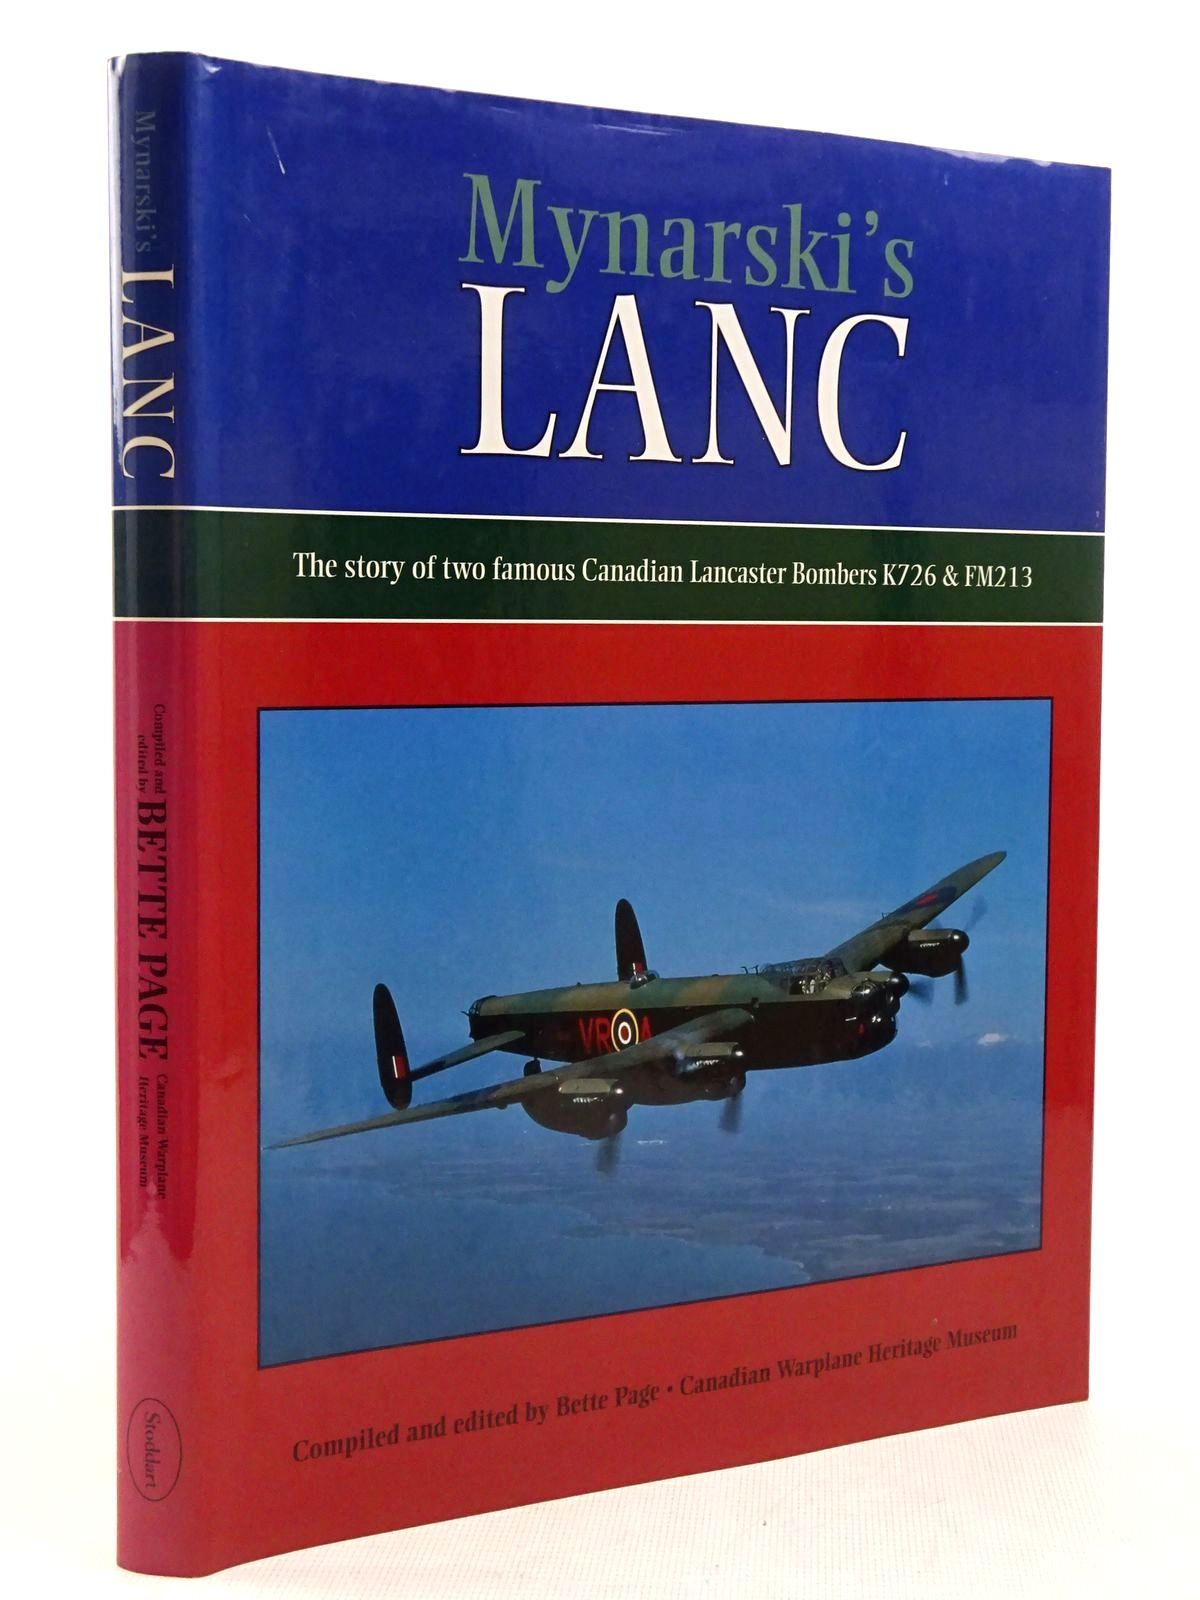 Photo of MYNARSKI'S LANC written by Page, Bette published by The Boston Mills Press (STOCK CODE: 2129184)  for sale by Stella & Rose's Books